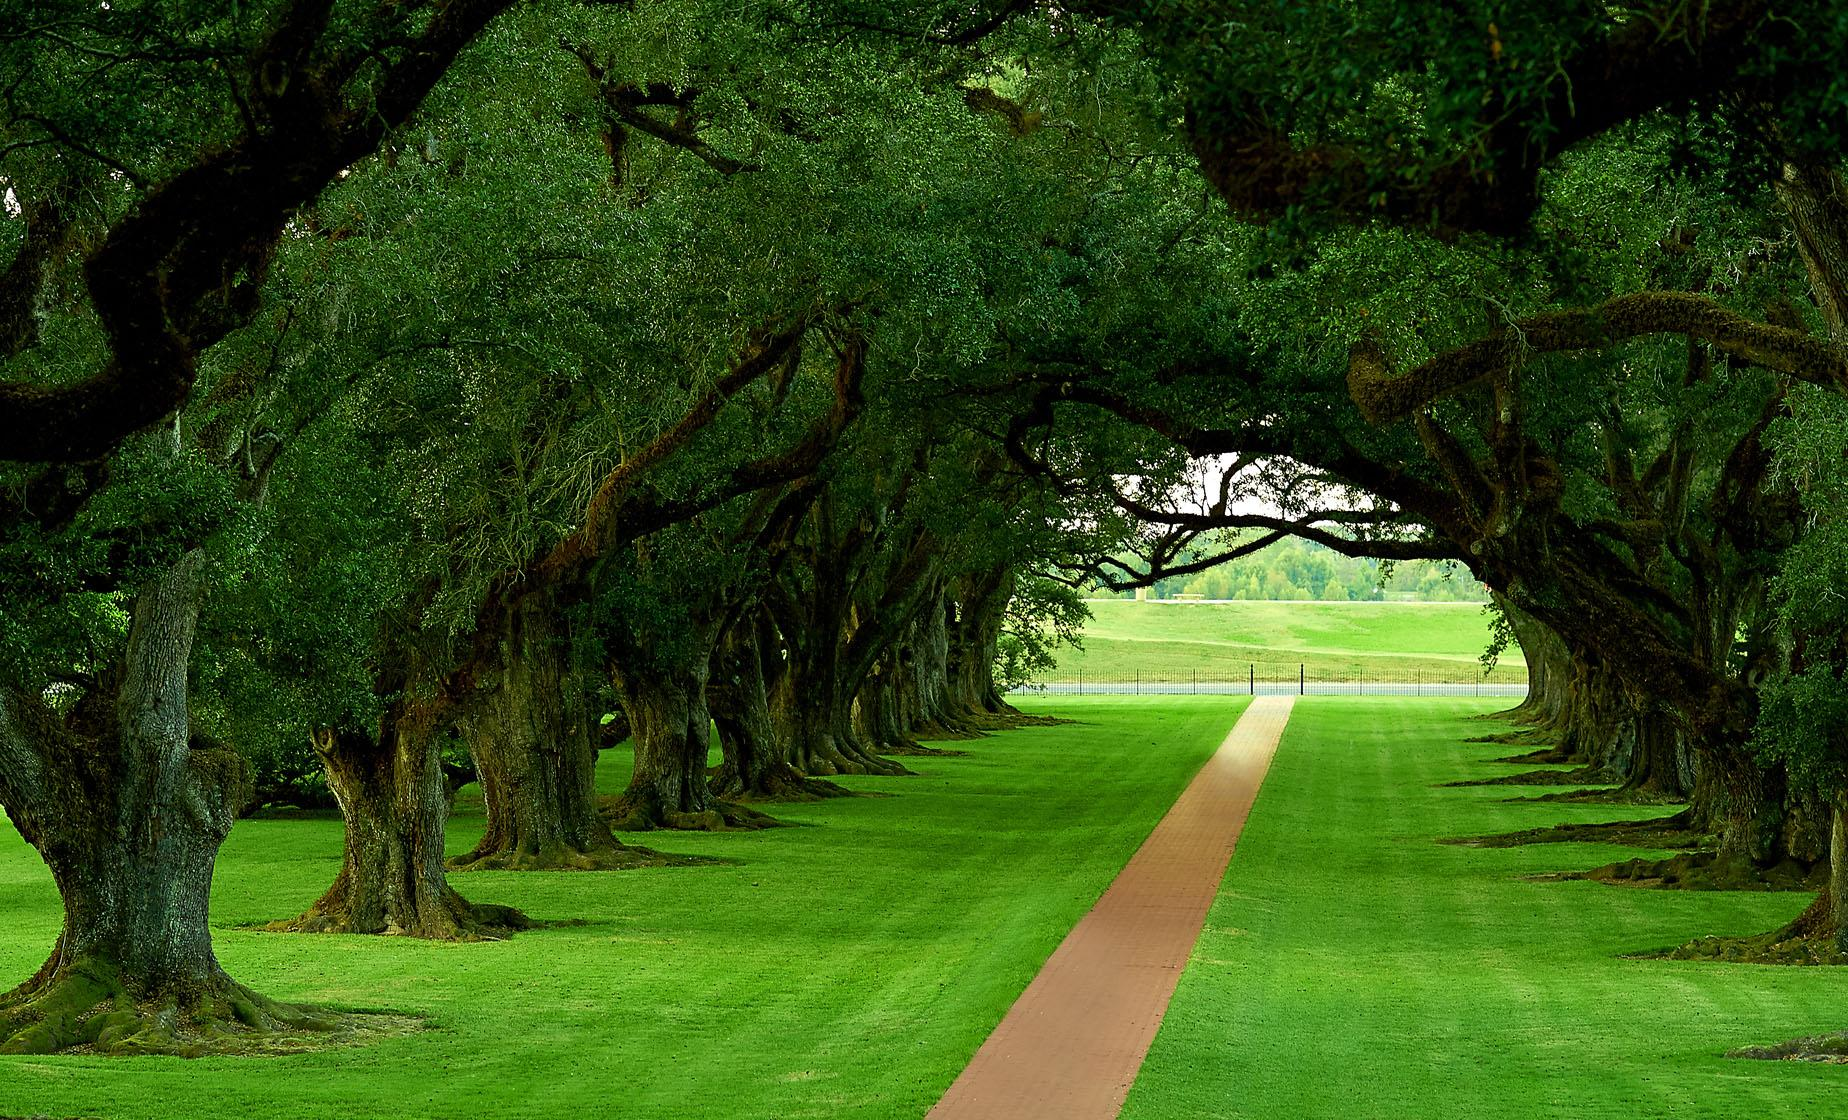 Oak Alley Plantation Tour in New Orleans (Majestic Cypress Trees)